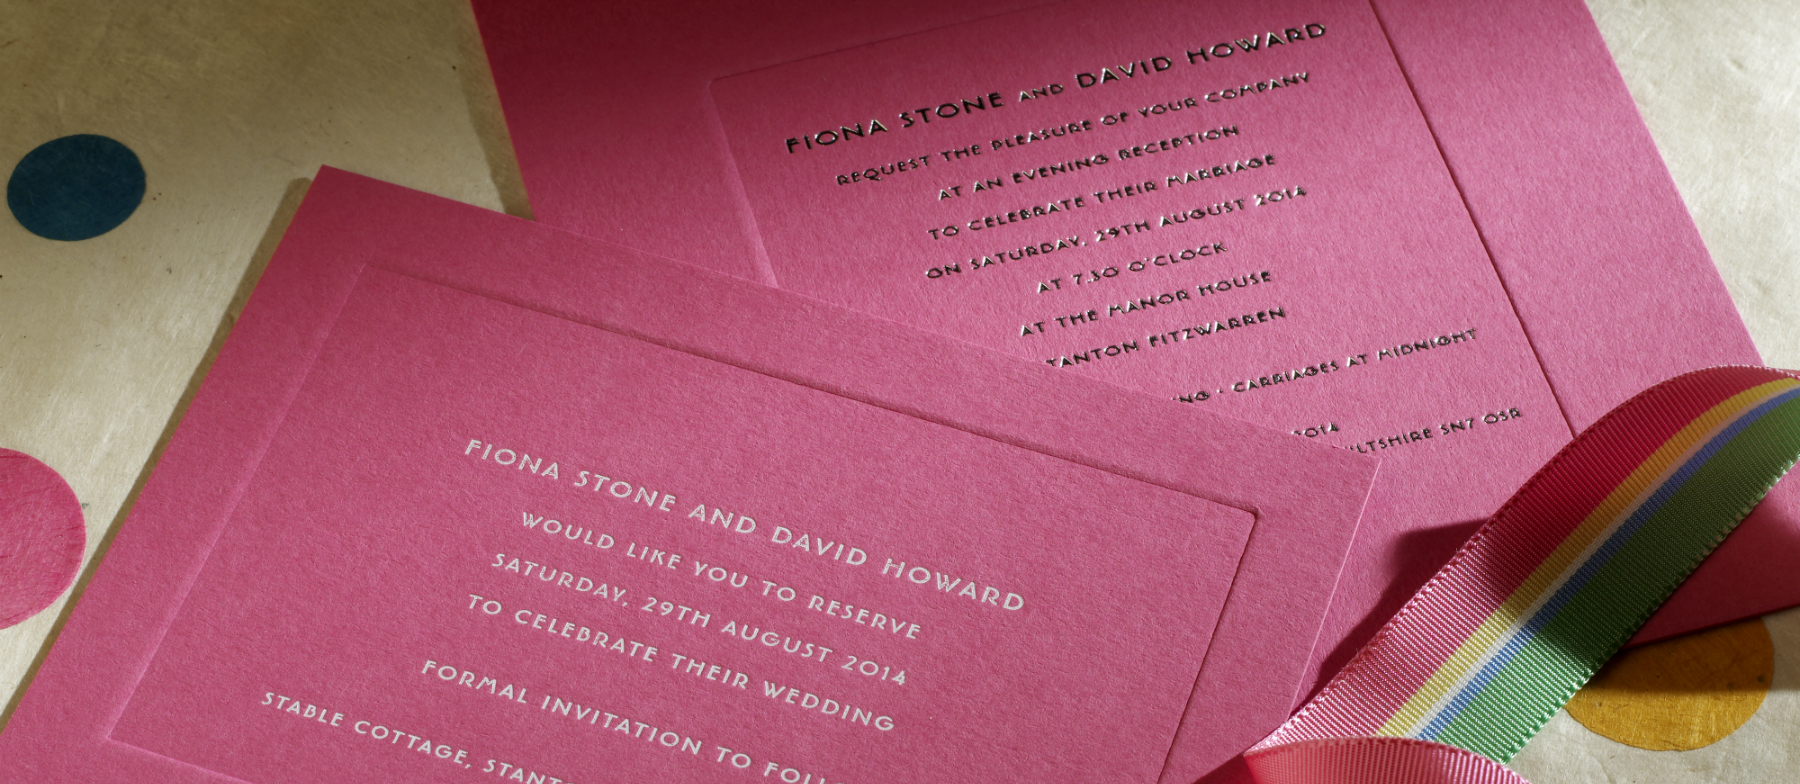 old bond street luxury wedding stationery